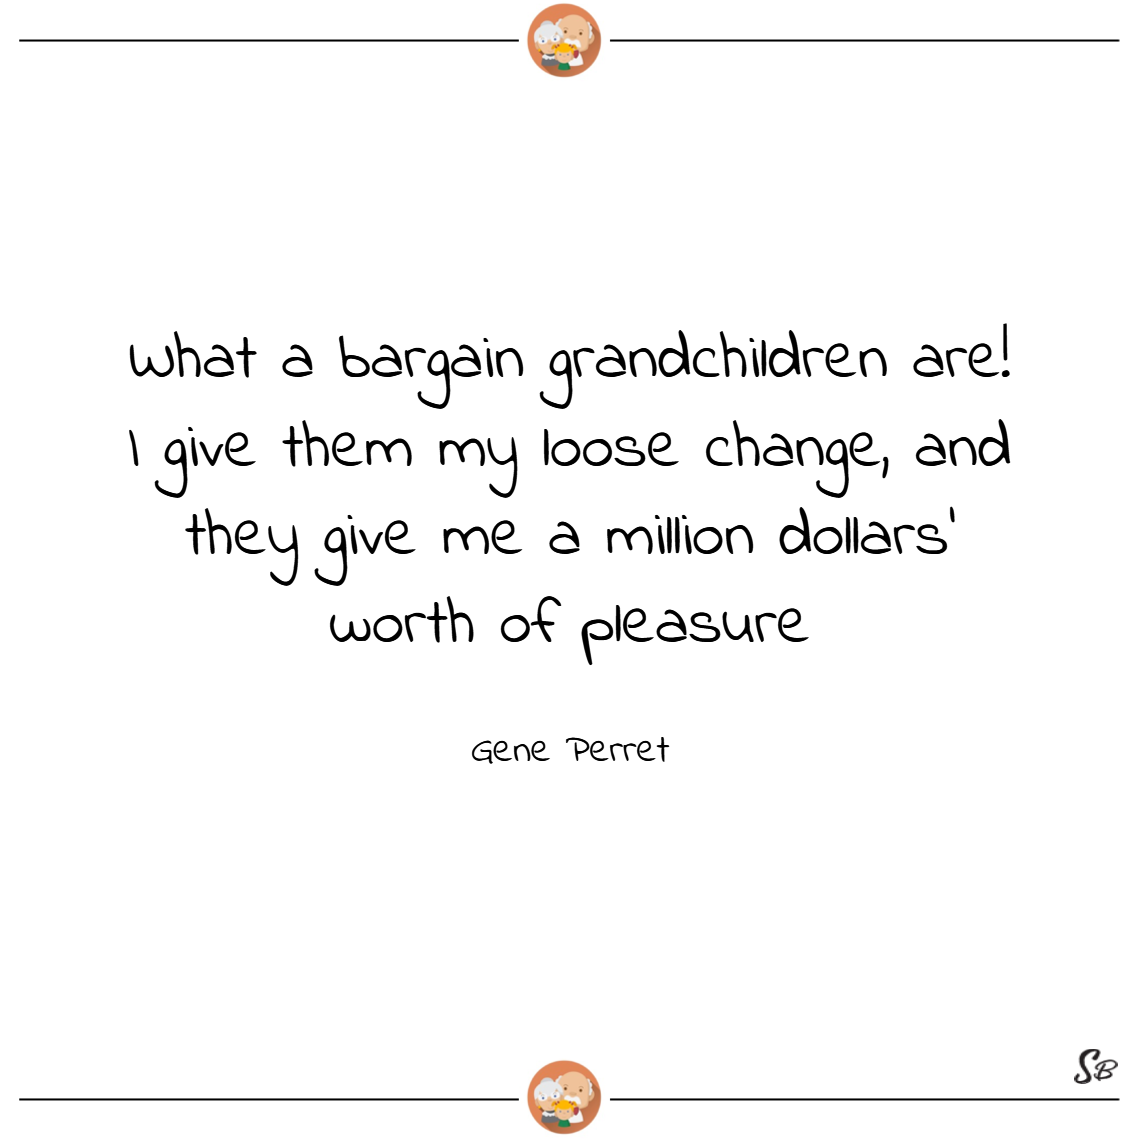 What a bargain grandchildren are! i give them my loose change, and they give me a million dollars' worth of pleasure. – gene perret